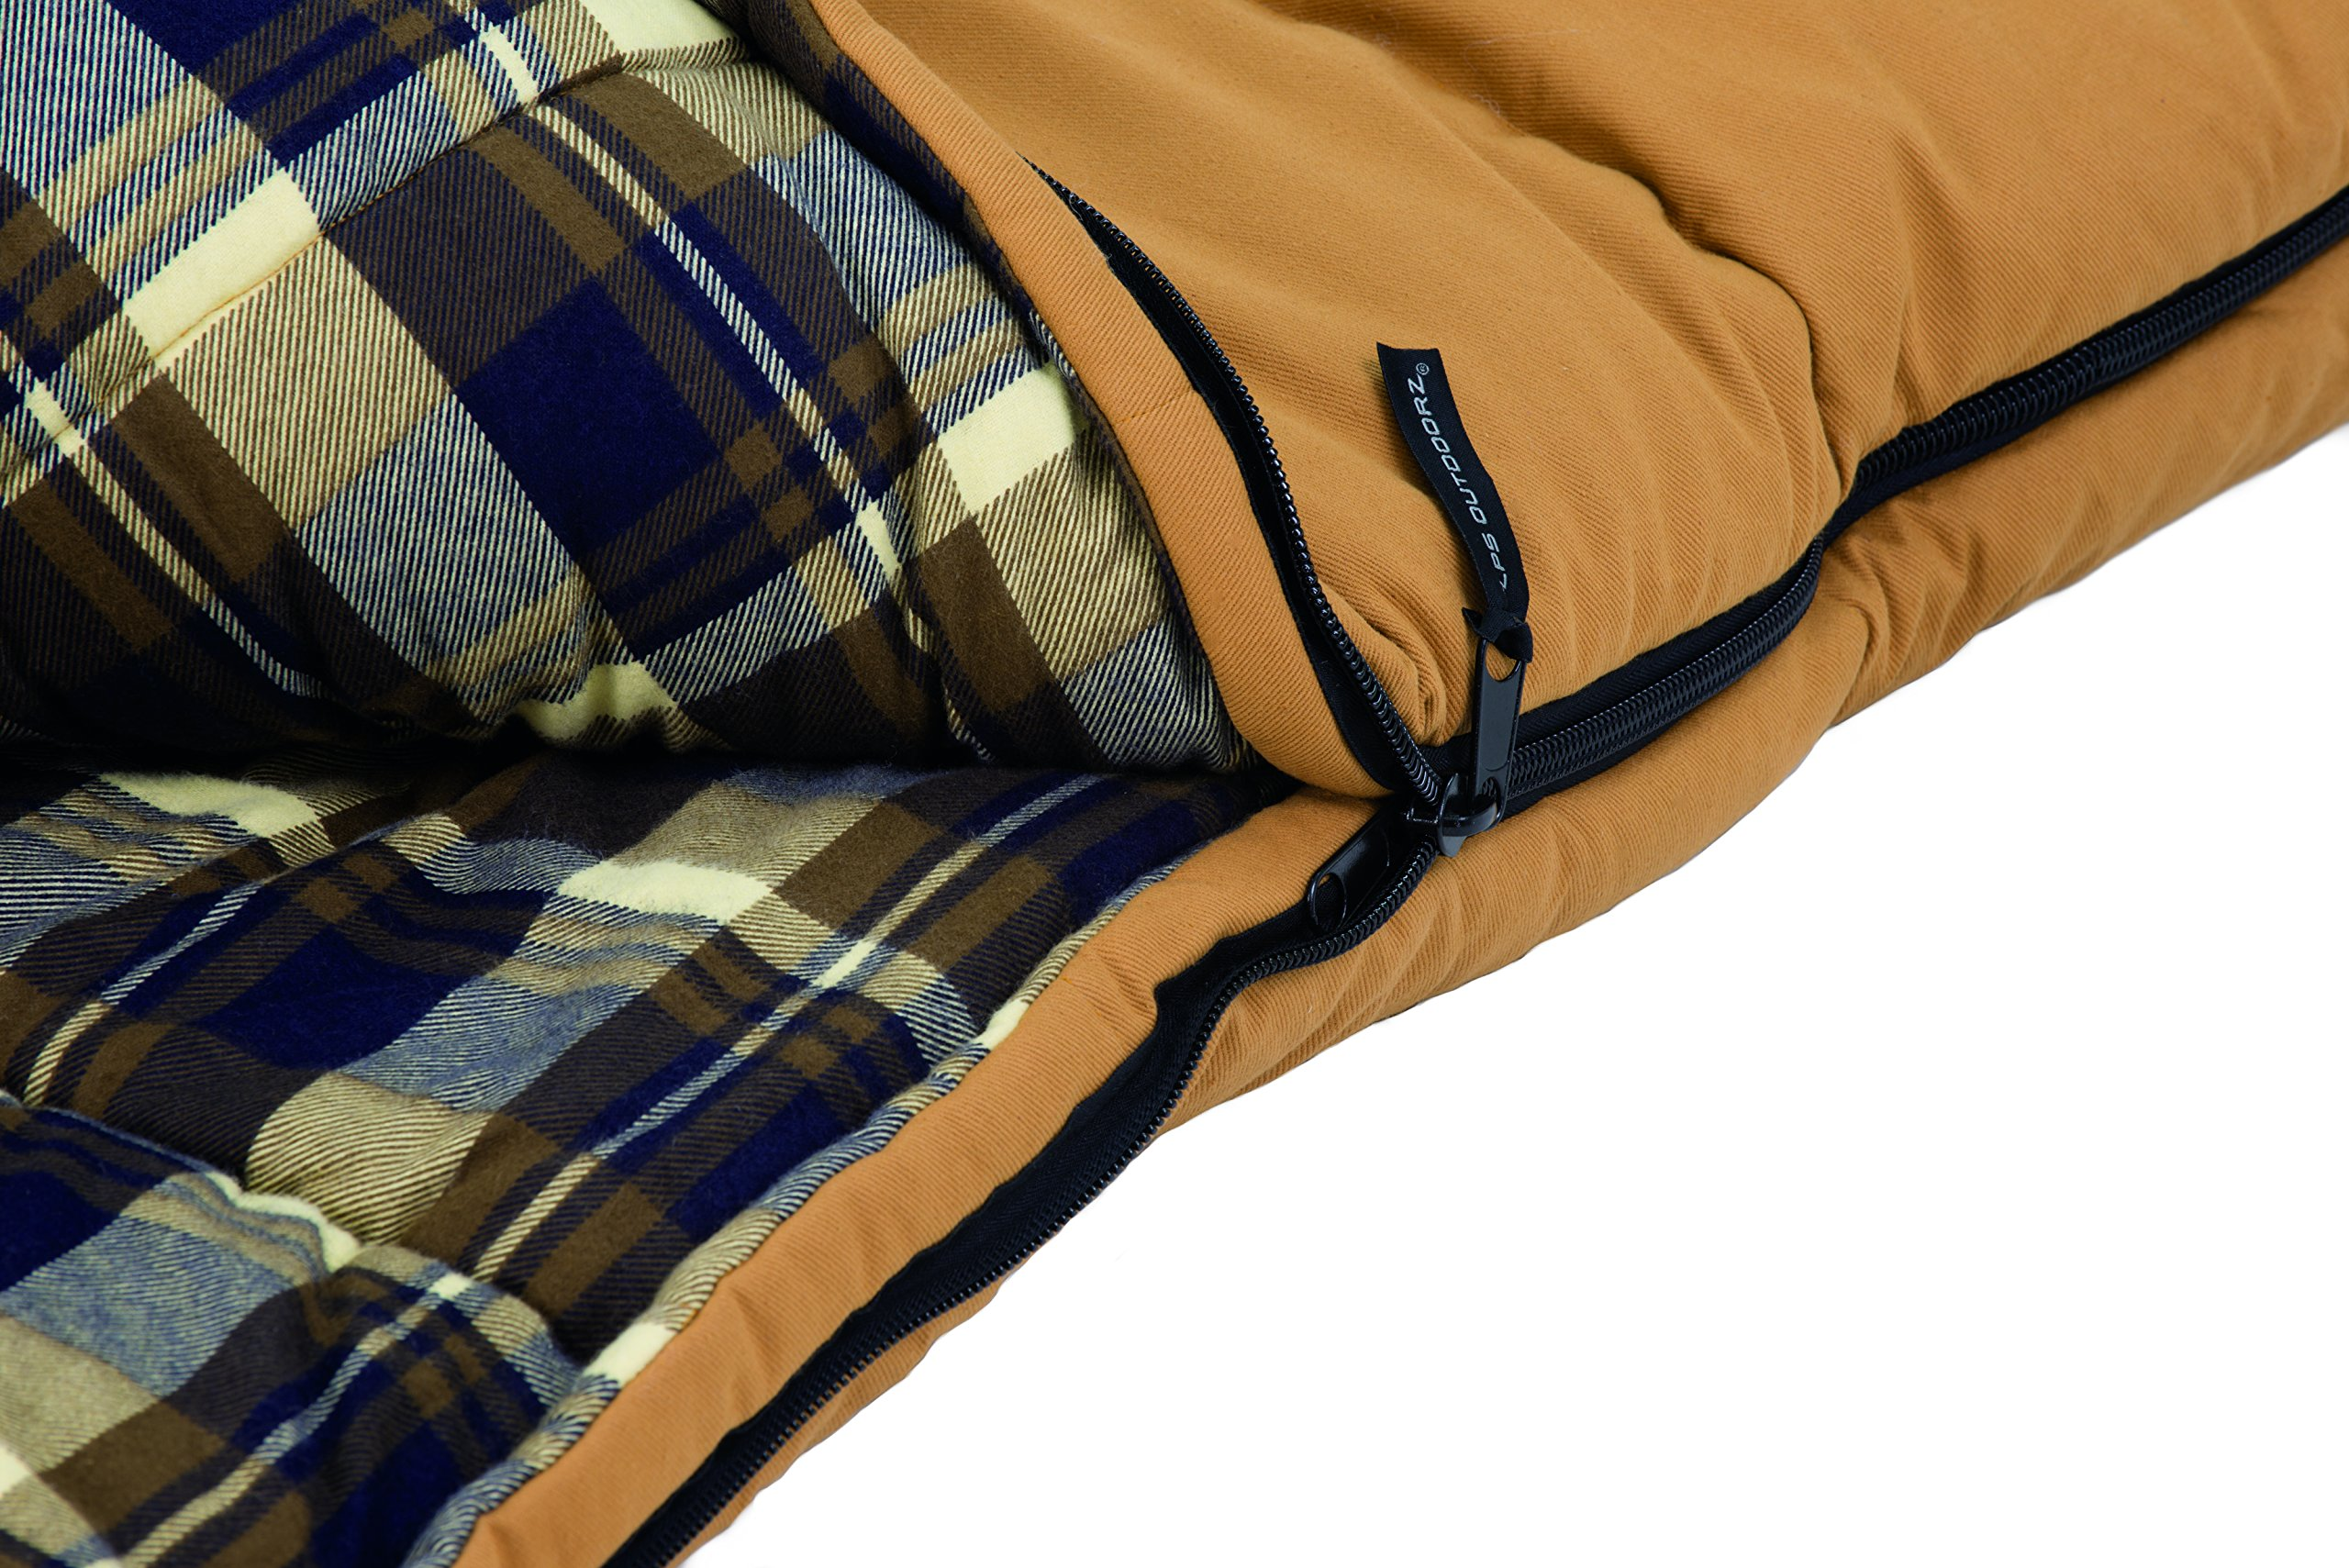 ALPS OutdoorZ Redwood -25 Sleeping Bag by ALPS OutdoorZ (Image #3)